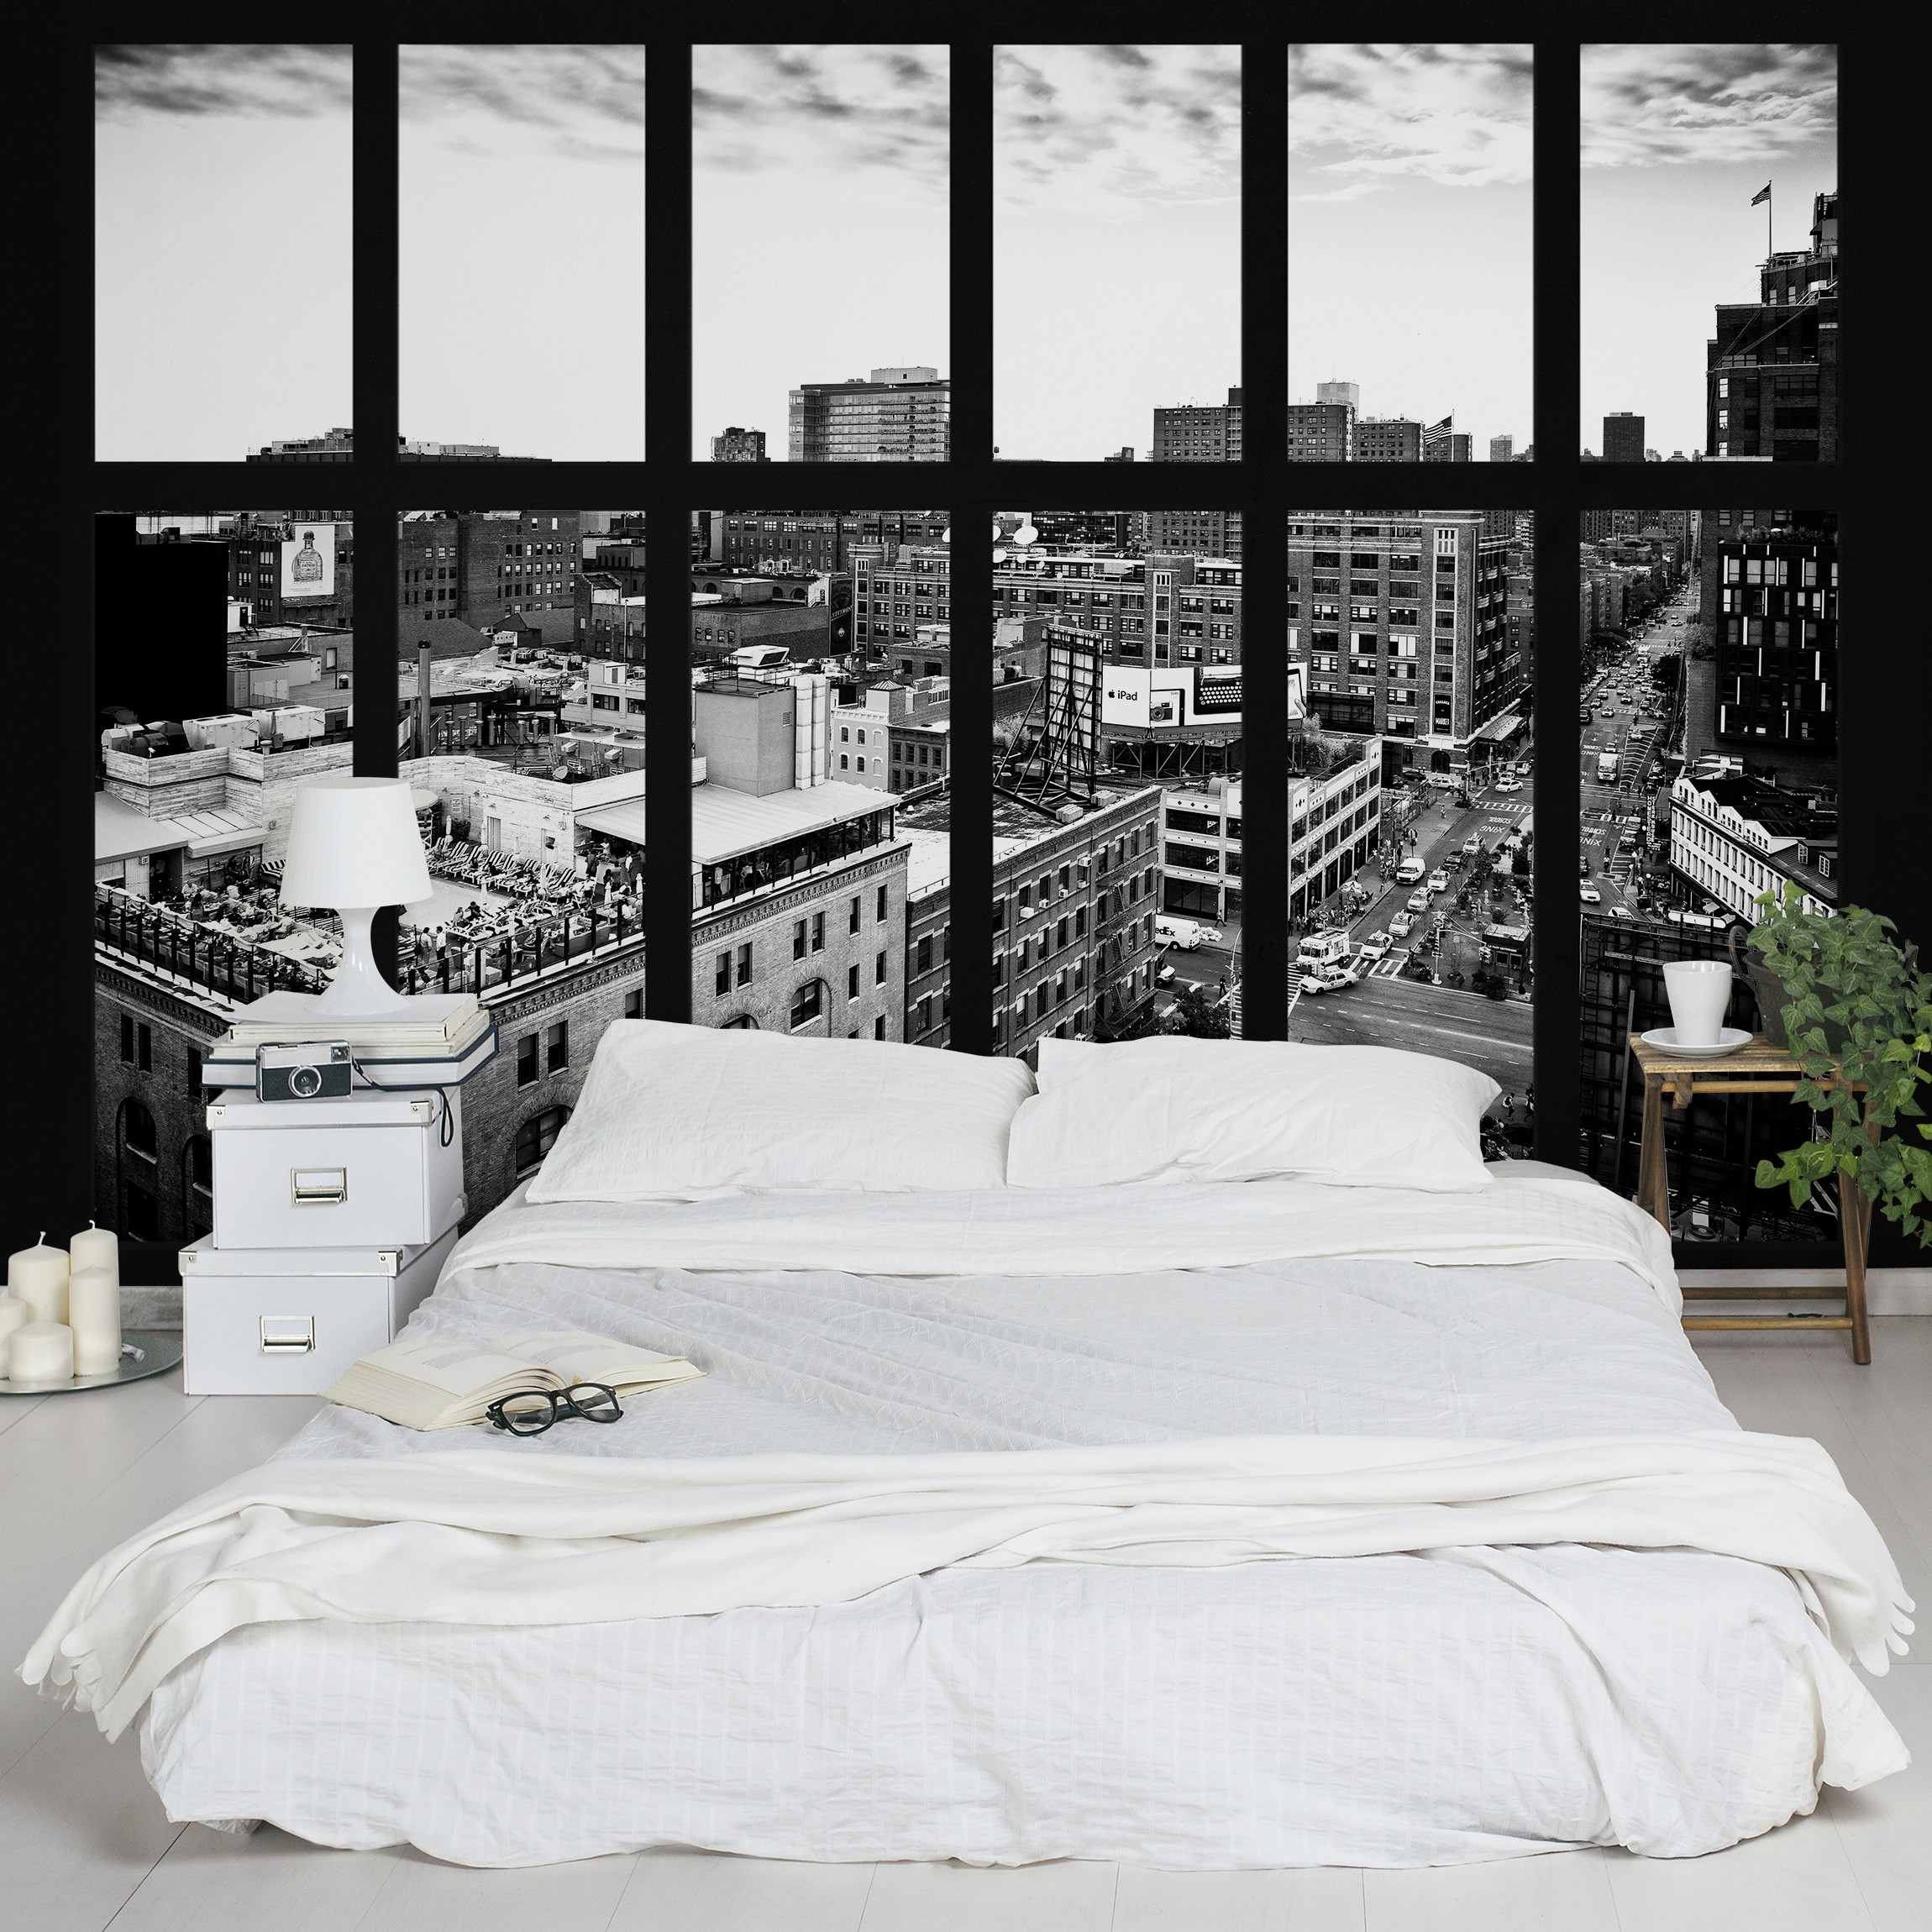 selbstklebende tapete fototapete new york fensterblick schwarz weiss. Black Bedroom Furniture Sets. Home Design Ideas